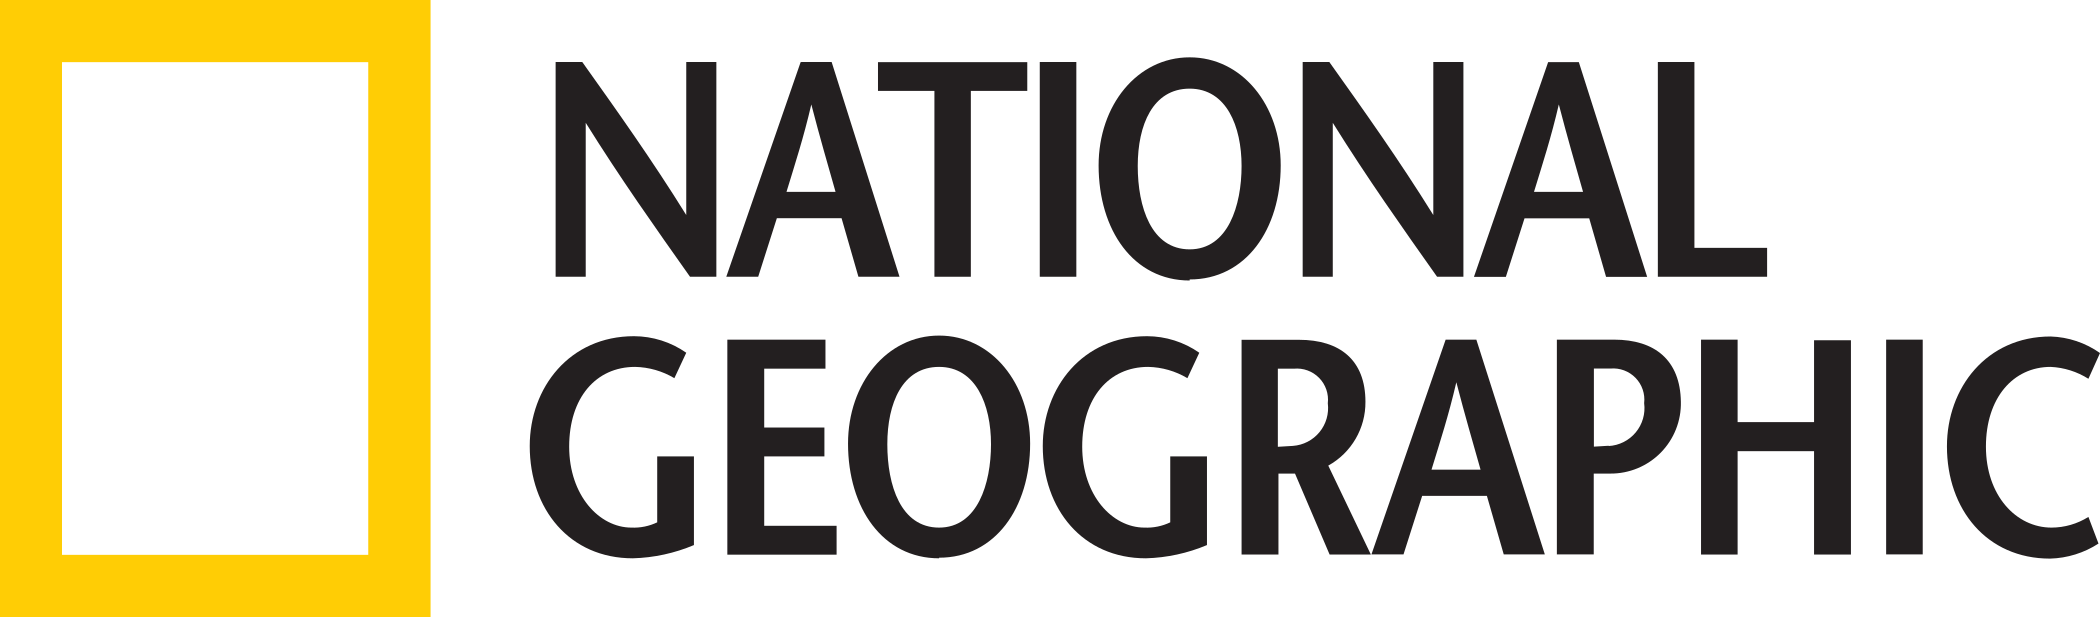 National Geographic Logo.